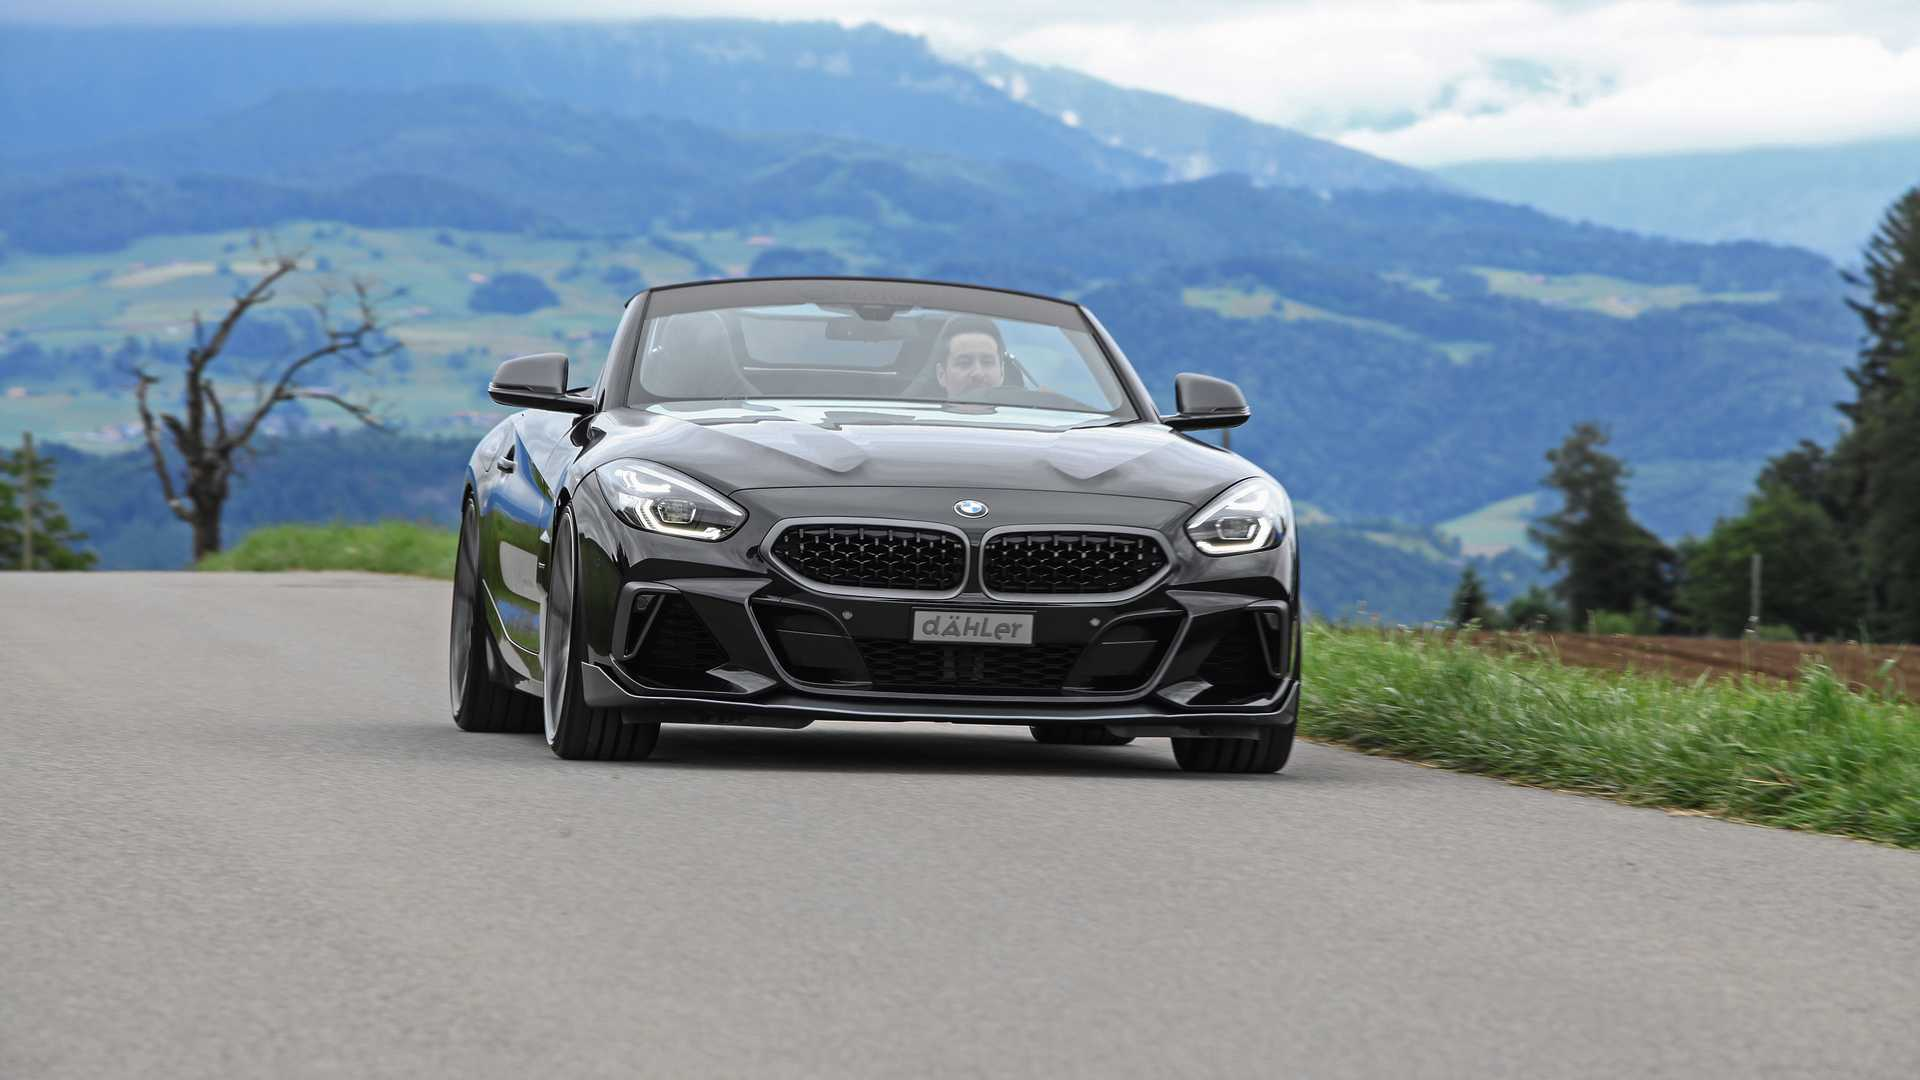 BMW-Z4-M40i-by-Dahler-5